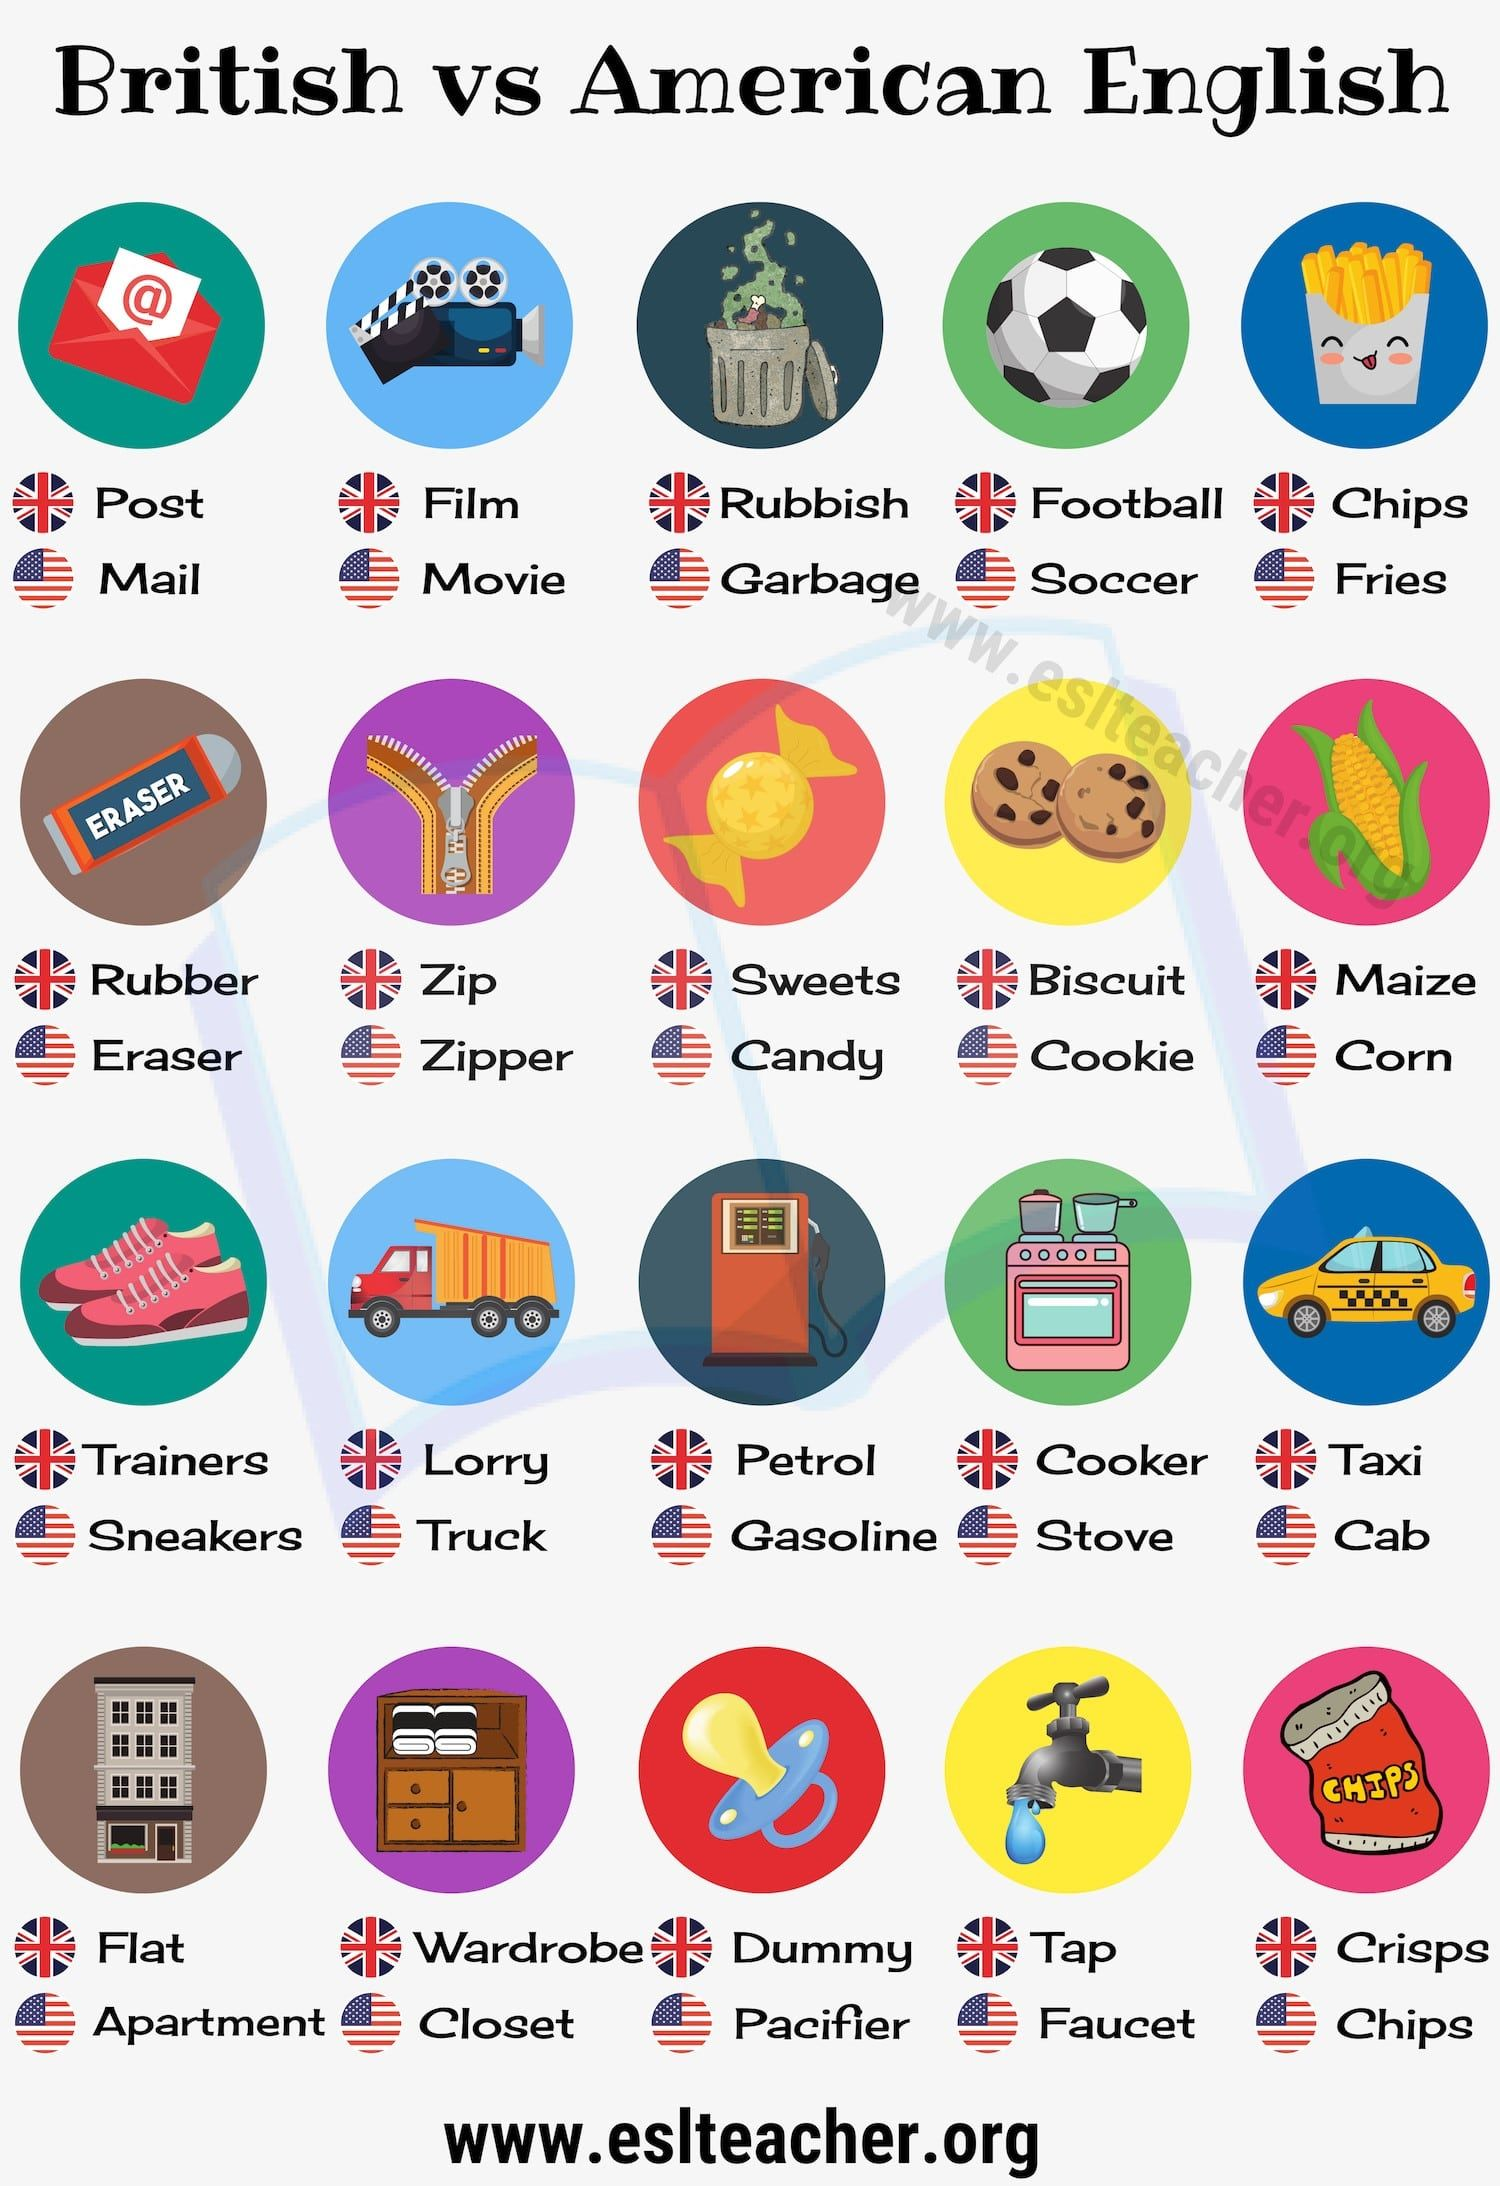 British English Vs American English 50 Differences